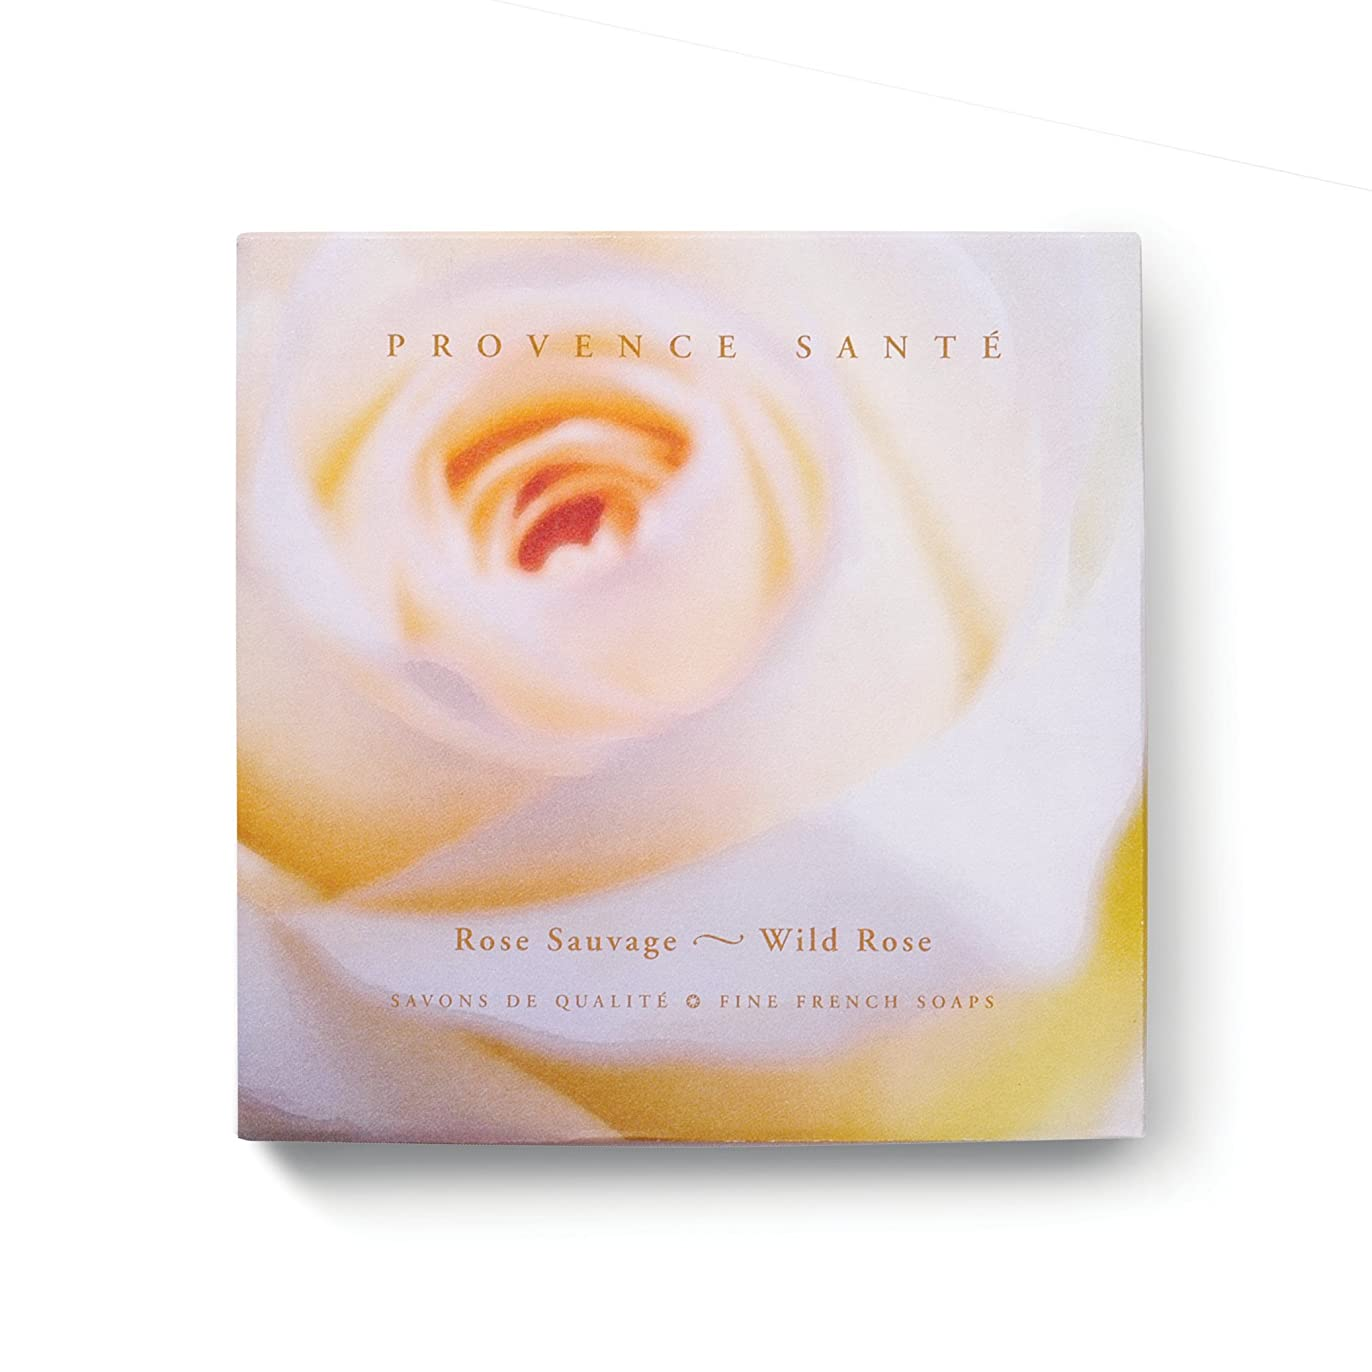 減衰個人どれProvence Sante PS Gift Soap Wild Rose, 2.7oz 4 Bar Gift Box by Provence Sante [並行輸入品]